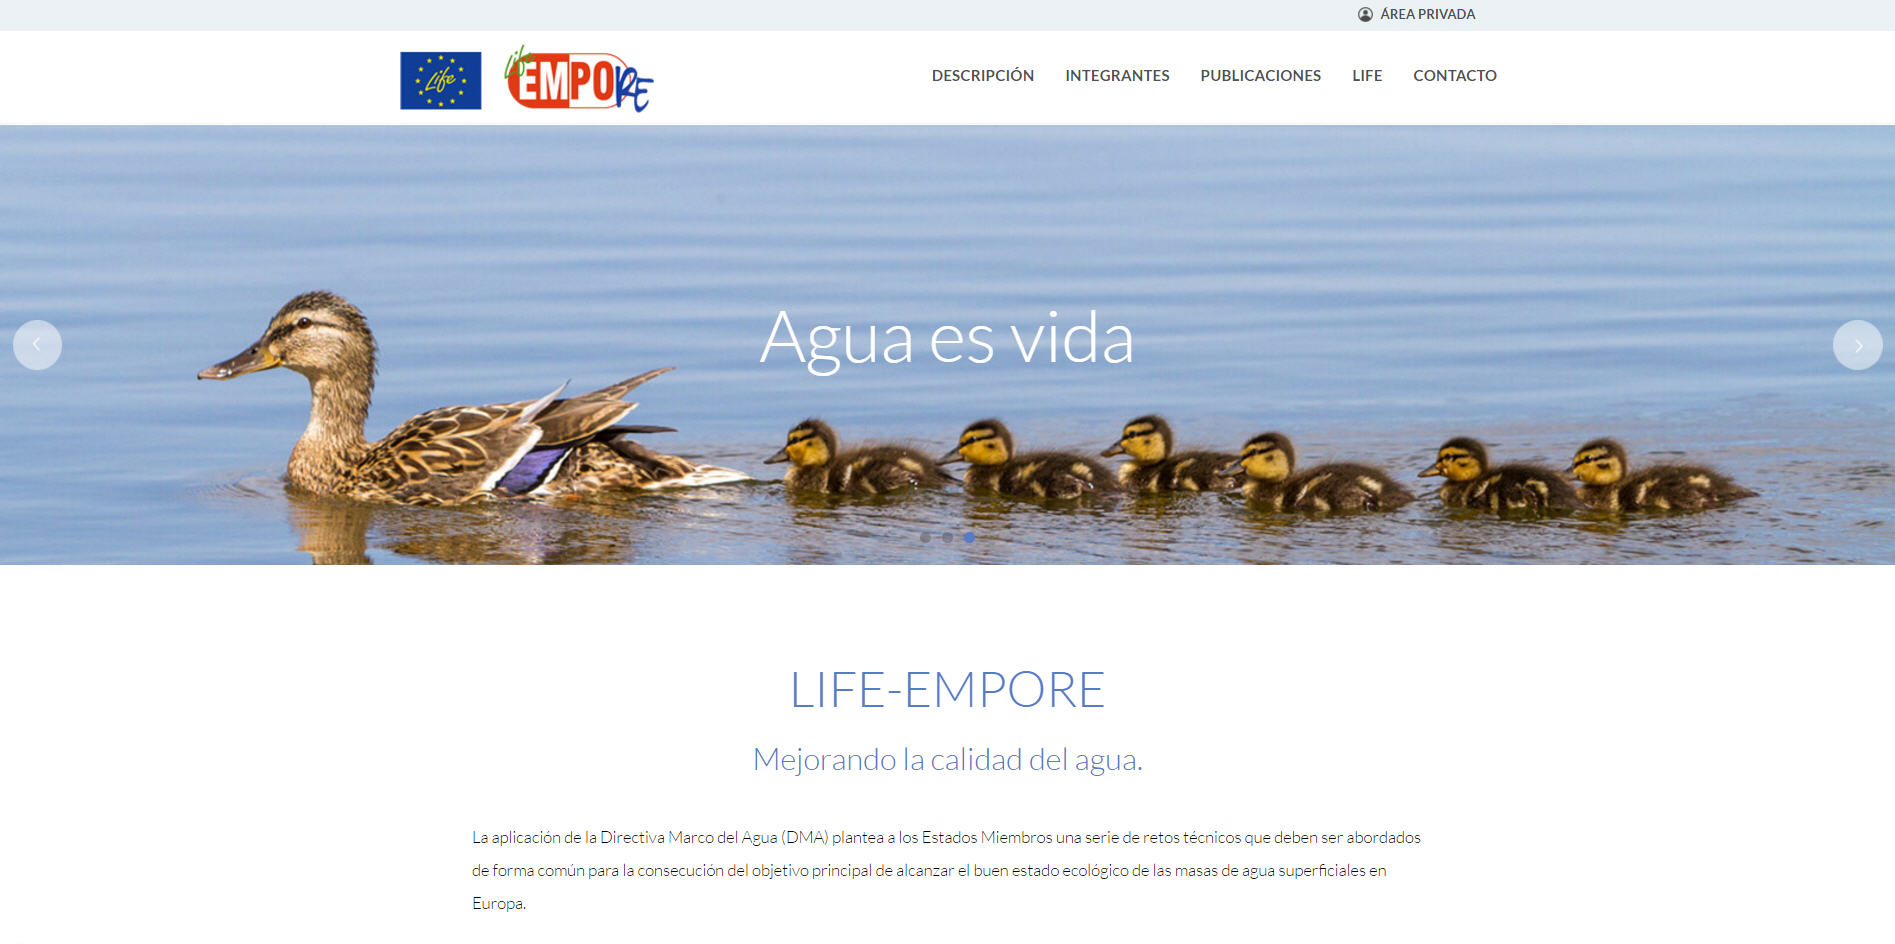 LIFE-EMPORE website is already available¡